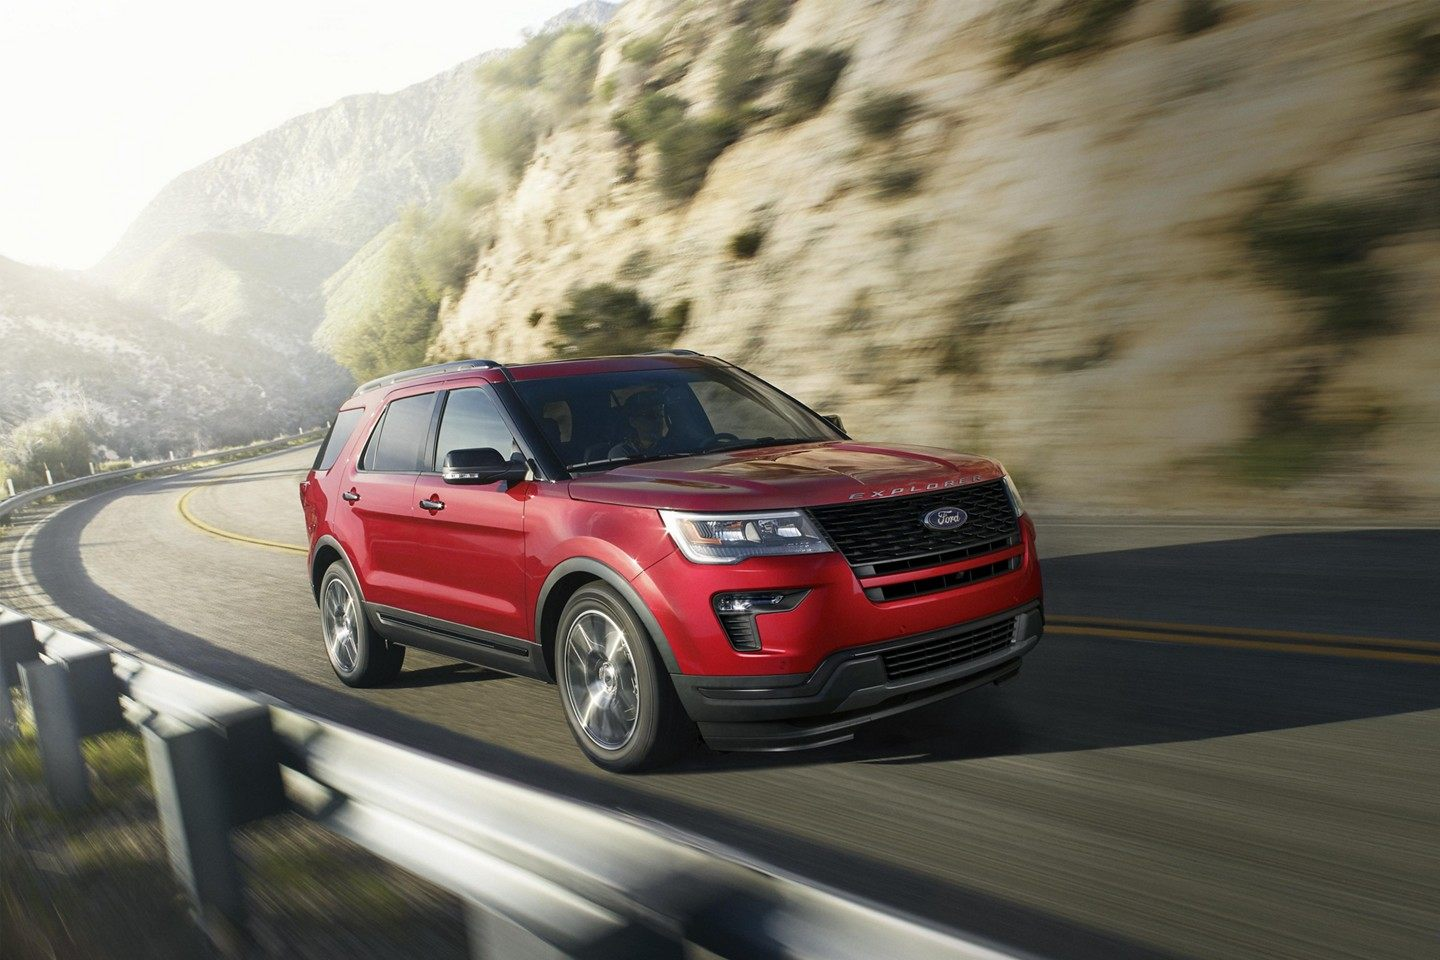 2019 Ford Explorer Key Features